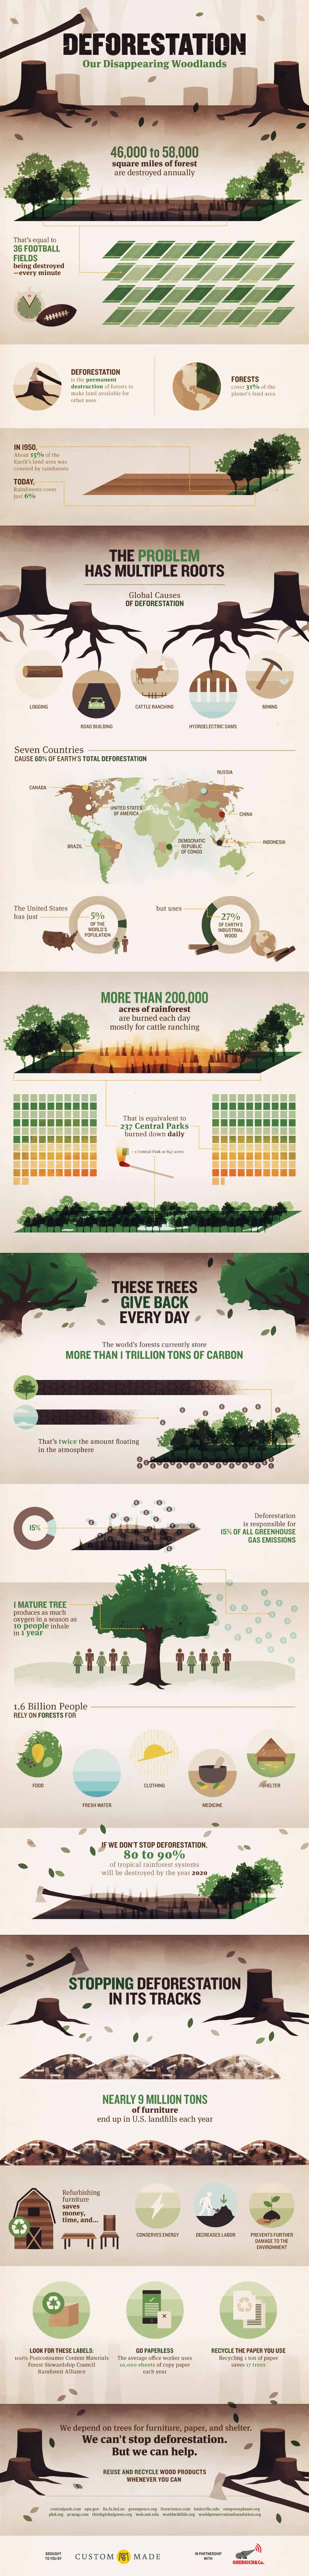 the effects of deforestation on our These are some of the major negative effects of deforestation on our environment that should not be ignored because deforestation is creating different natural time-bombs waiting to explode – we should stop pushing for deforestation before it's too late.